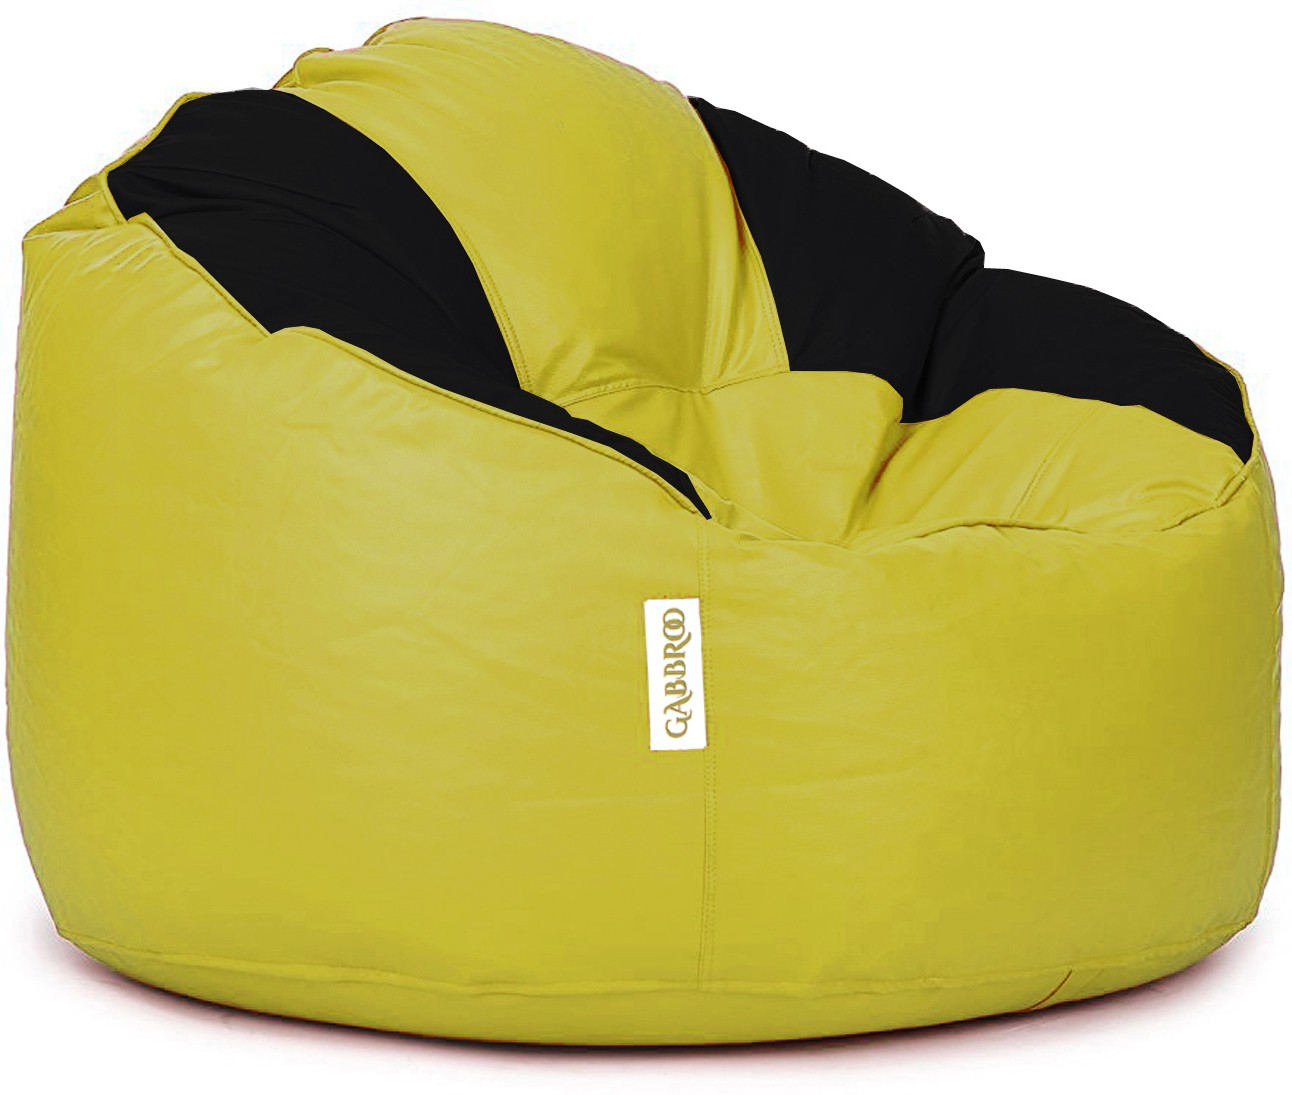 View Gabbroo XXXL Lounger Bean Bag Cover(Yellow, Black) Furniture (StyleCraft)